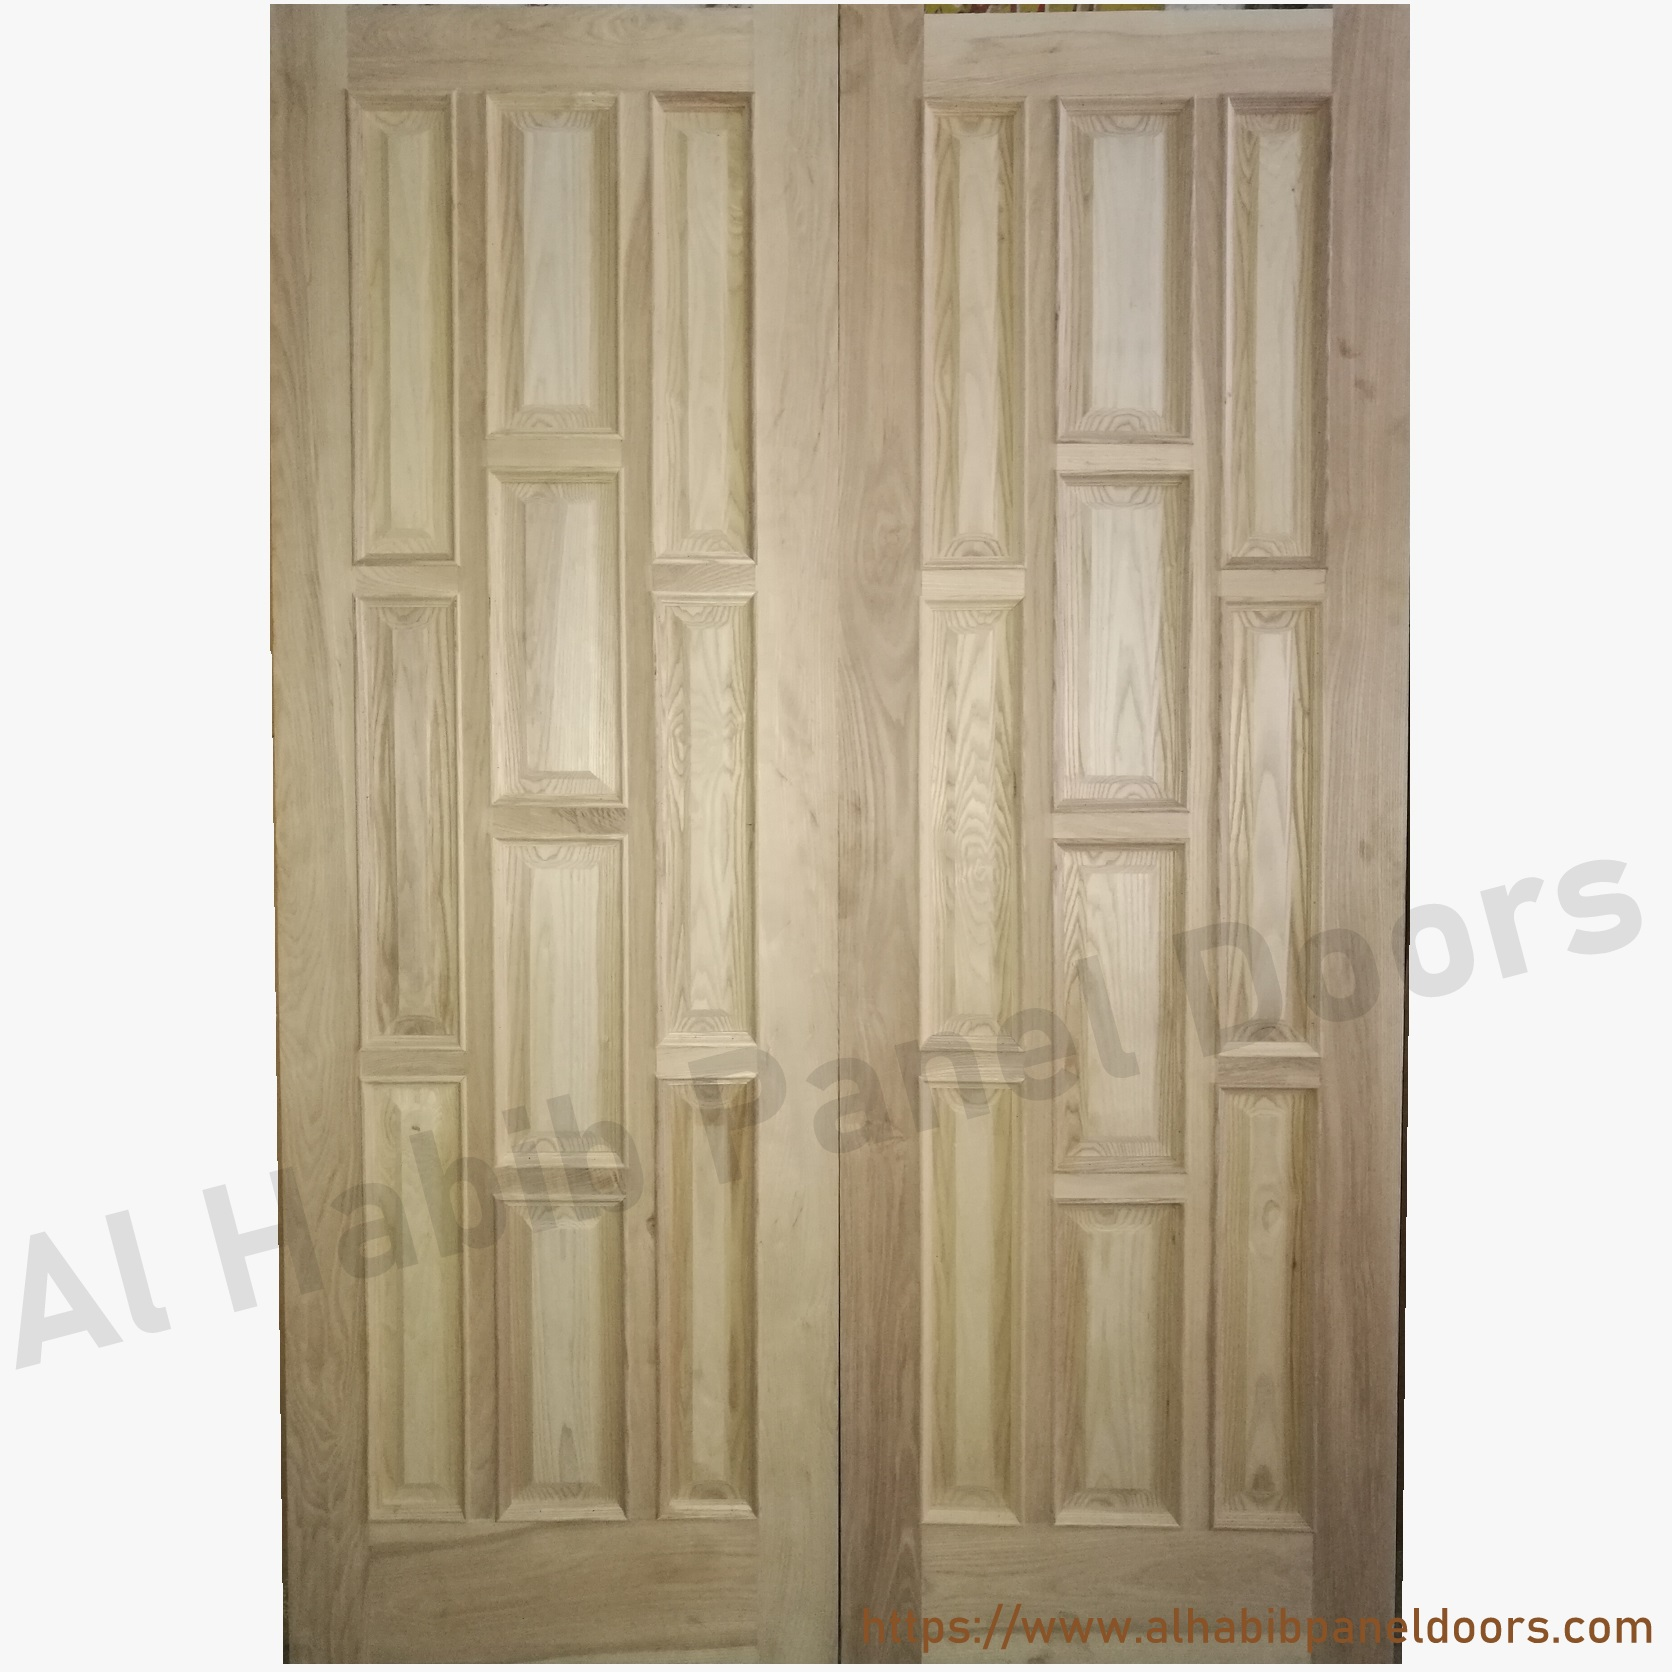 Solid wood main double door hpd413 main doors al habib for Plain main door designs